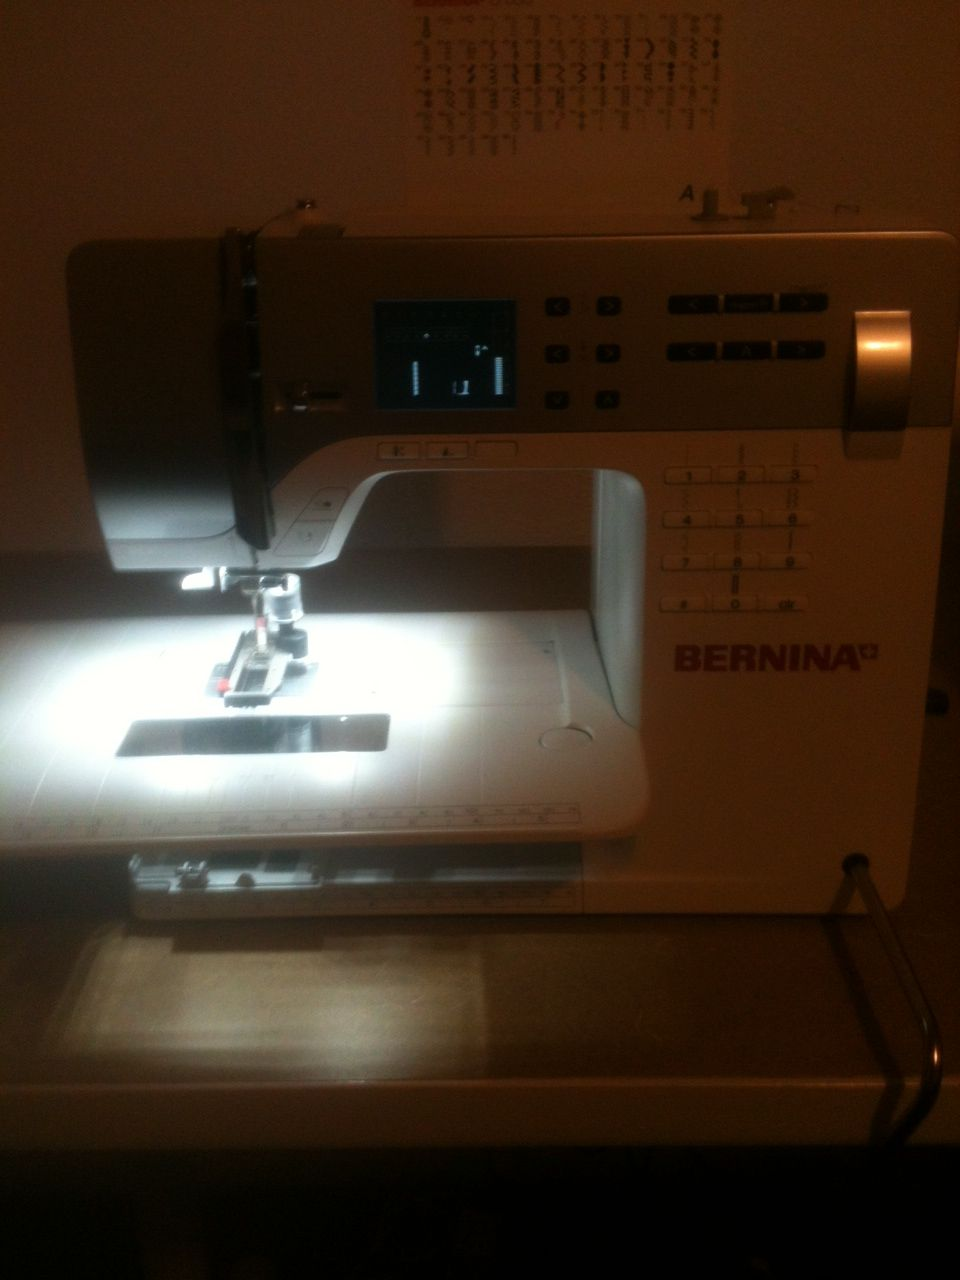 Step three.  Powering in my brand new Bernina 350.  Regina is ready to sew. My new sewing machine, I love her so much.  Here she is...